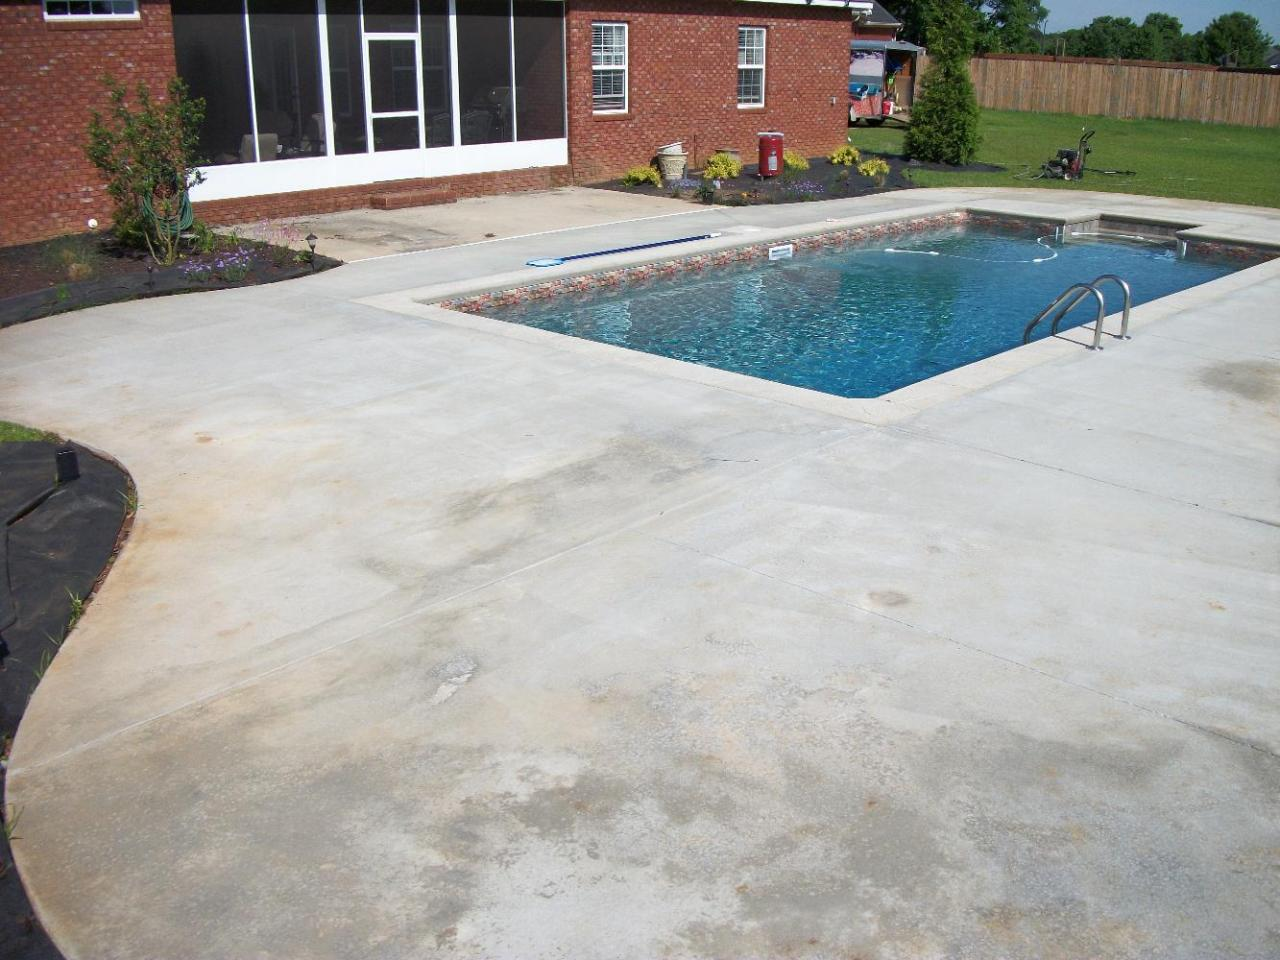 Concrete Pool Decks Photo Gallery Southern Concrete Designs Llc  Photo Gallery 3